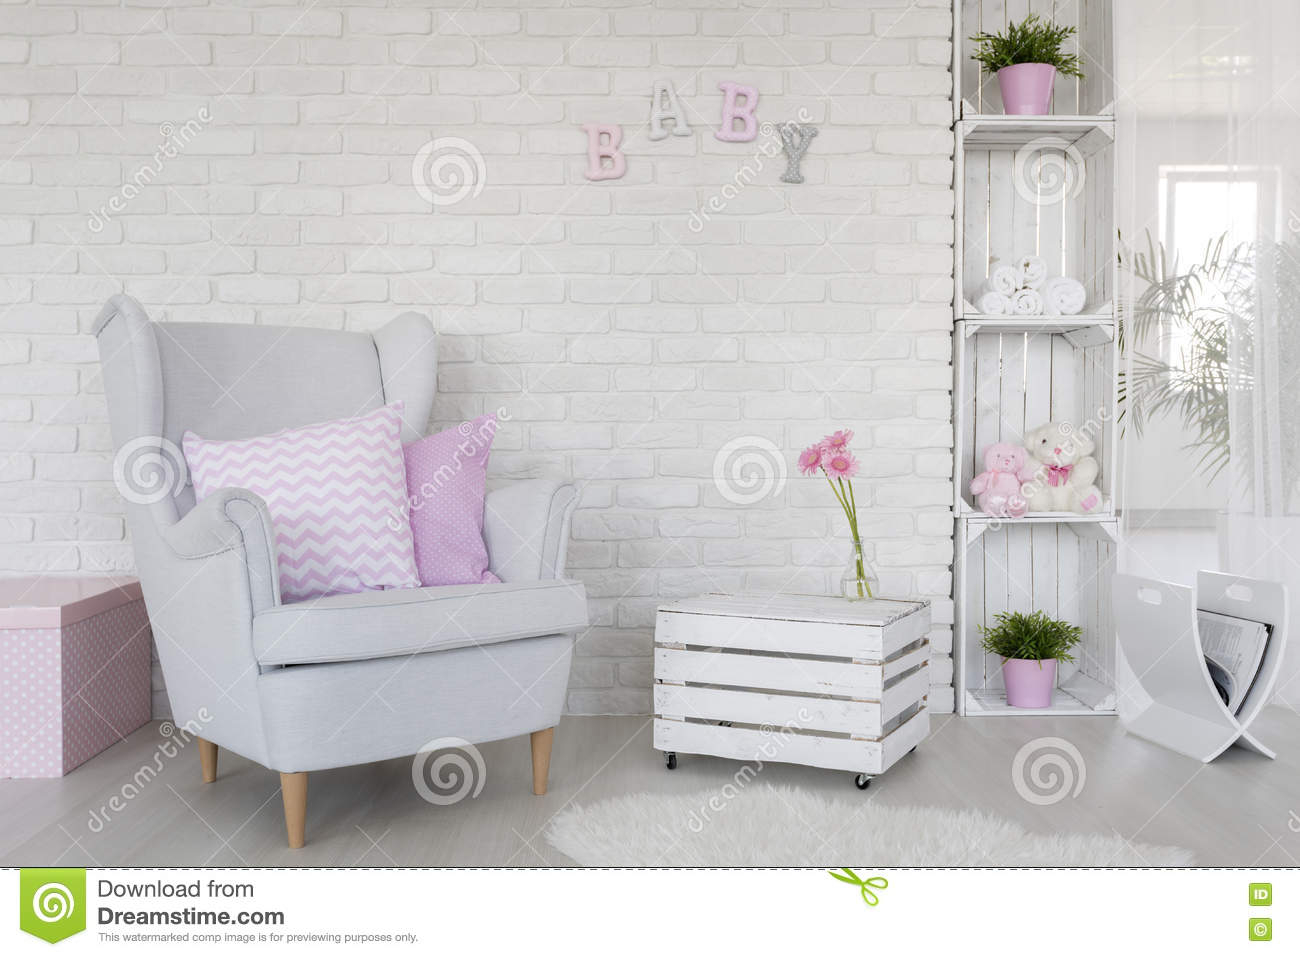 Baby Bedroom In A Box Special: Eco-friendly Baby Room Decor In White Stock Photo